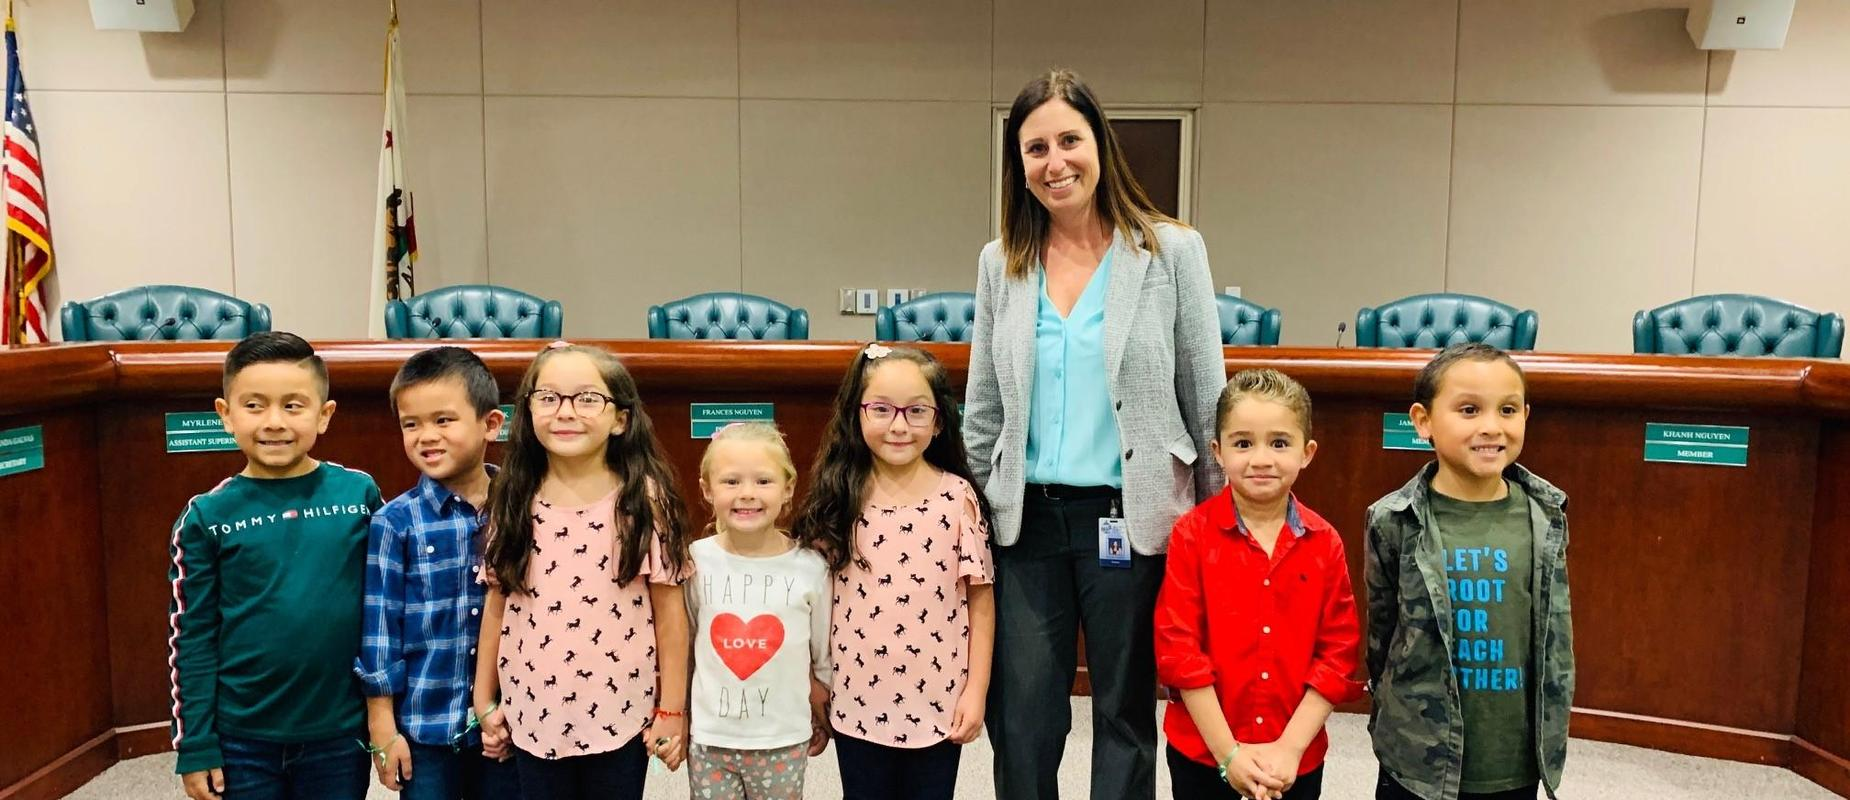 Fryberger Students present their PBLs at the board meeting.